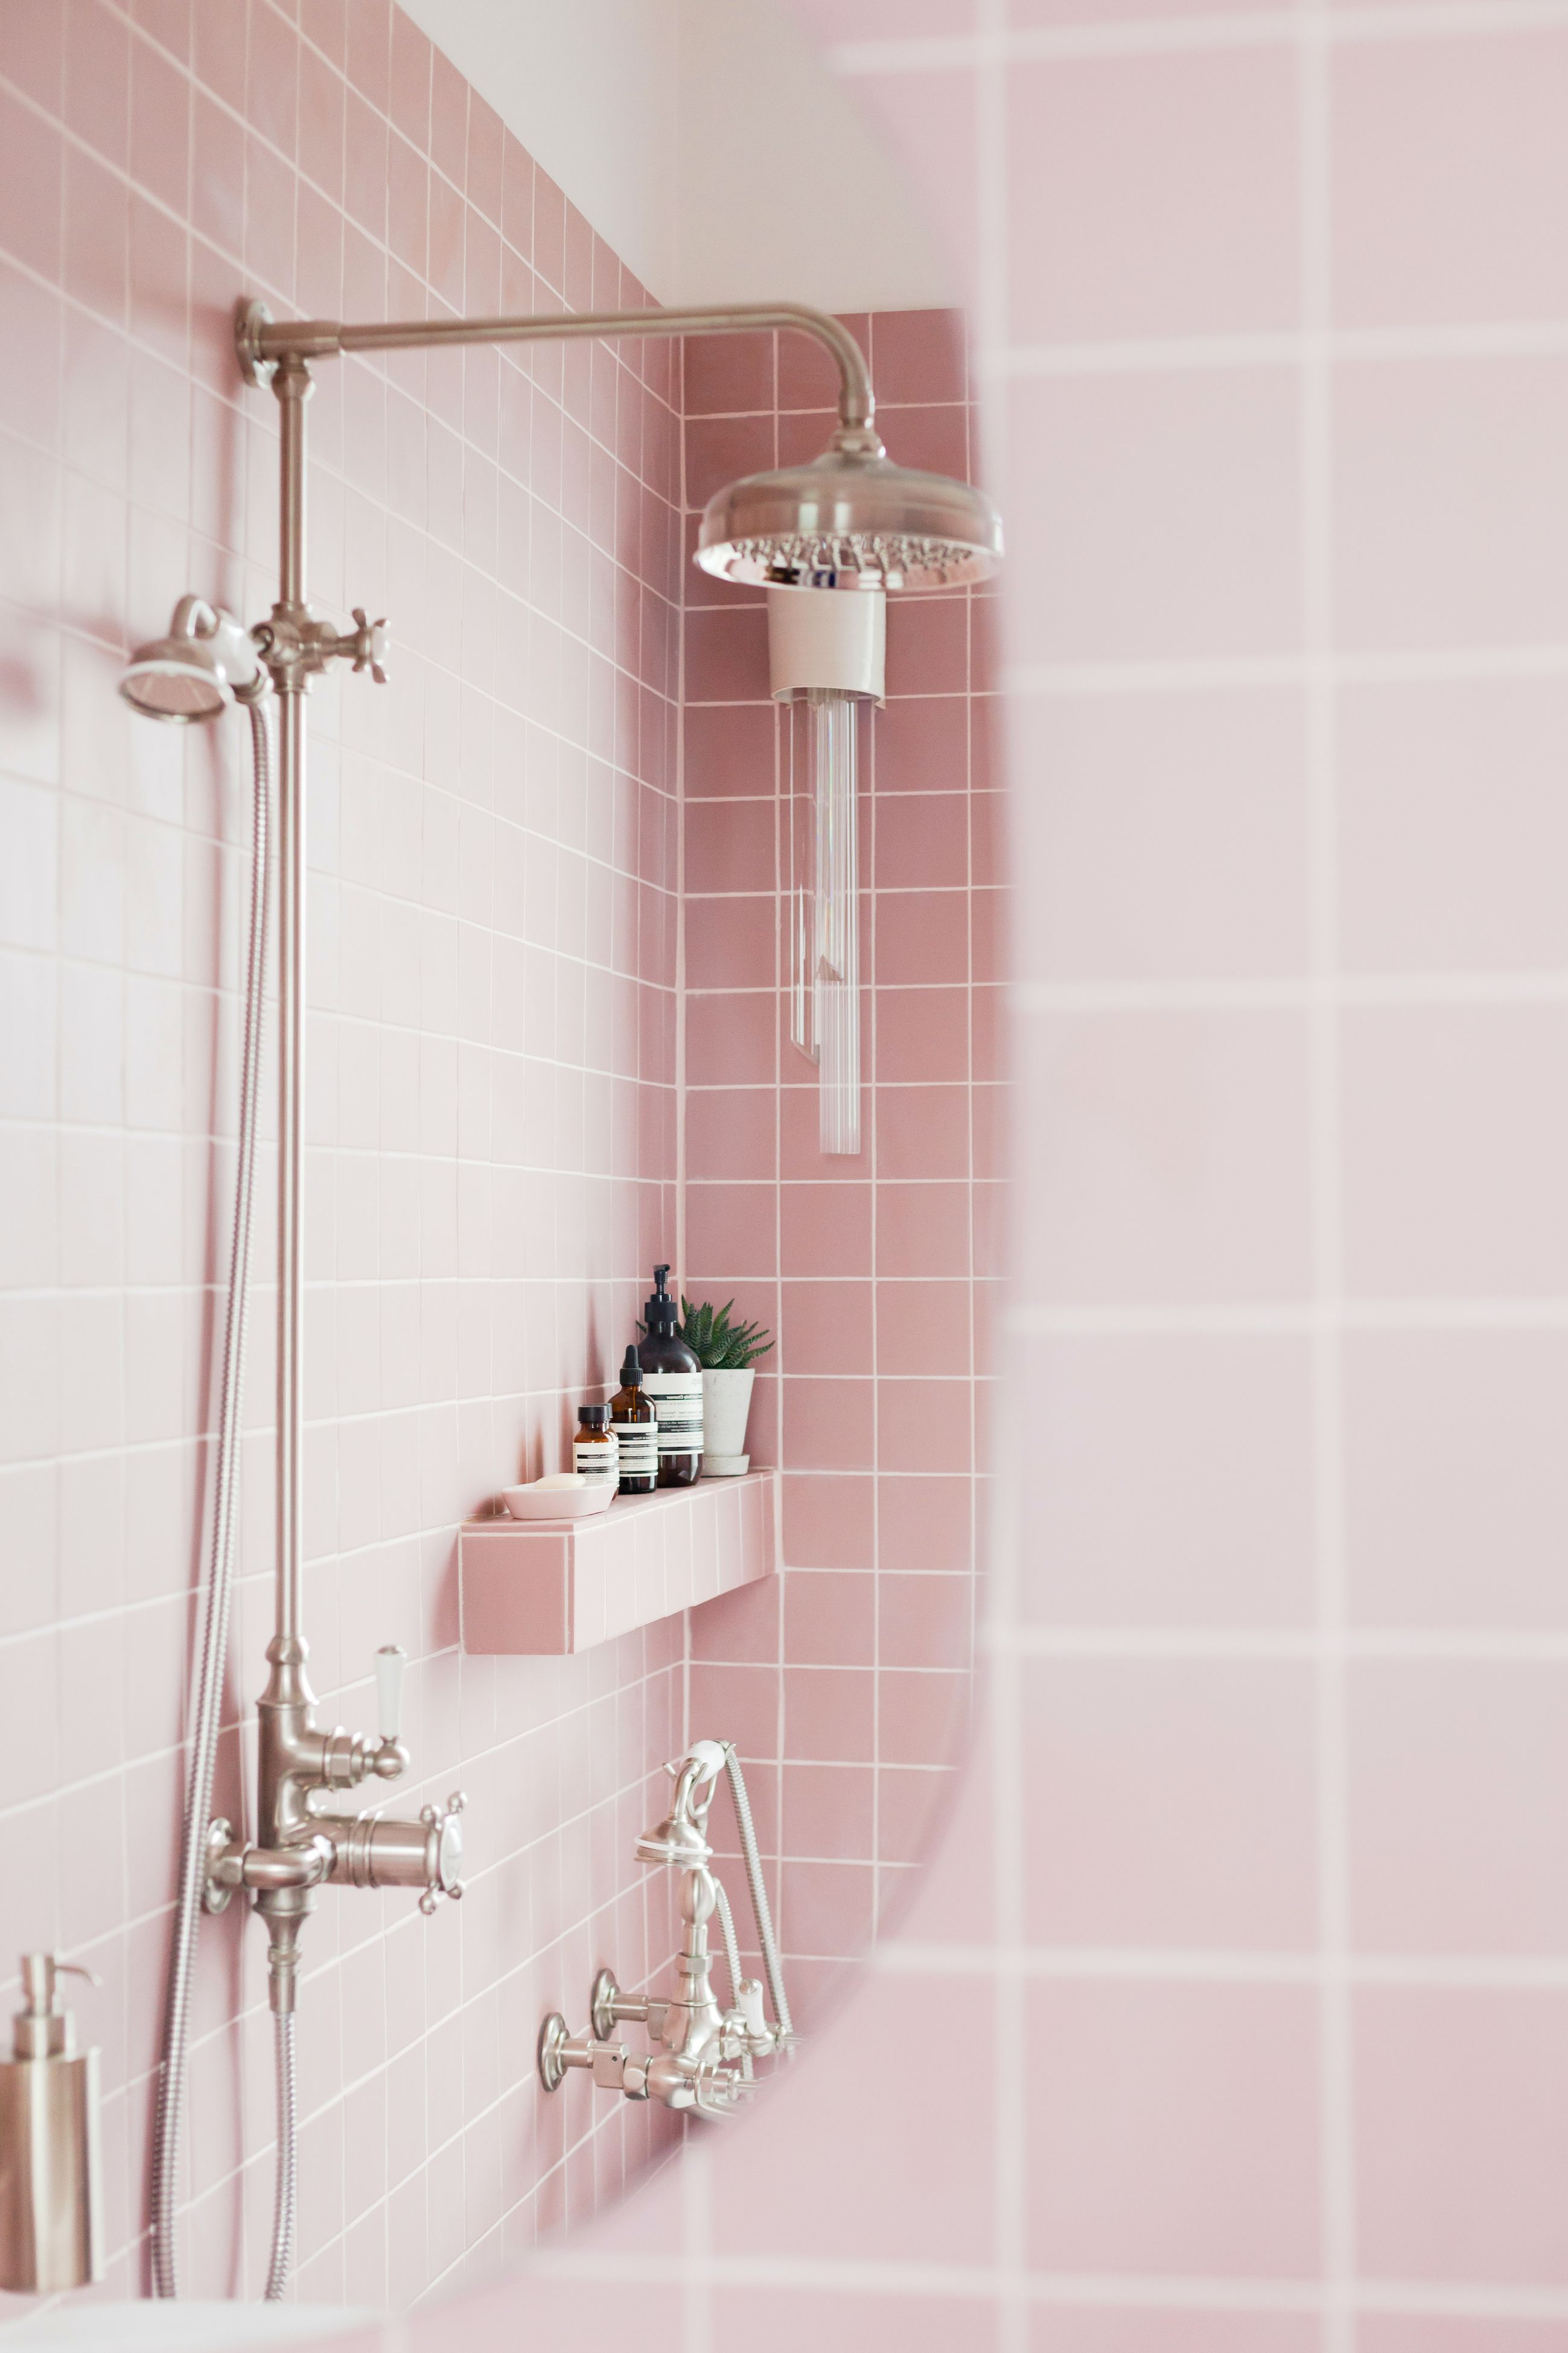 Pretty In Pink We Re So Excited To Share An Exciting Project By 2lg Studio Featuring Our Stunning Victorian Tiles The Soft Pastel Tone Of These